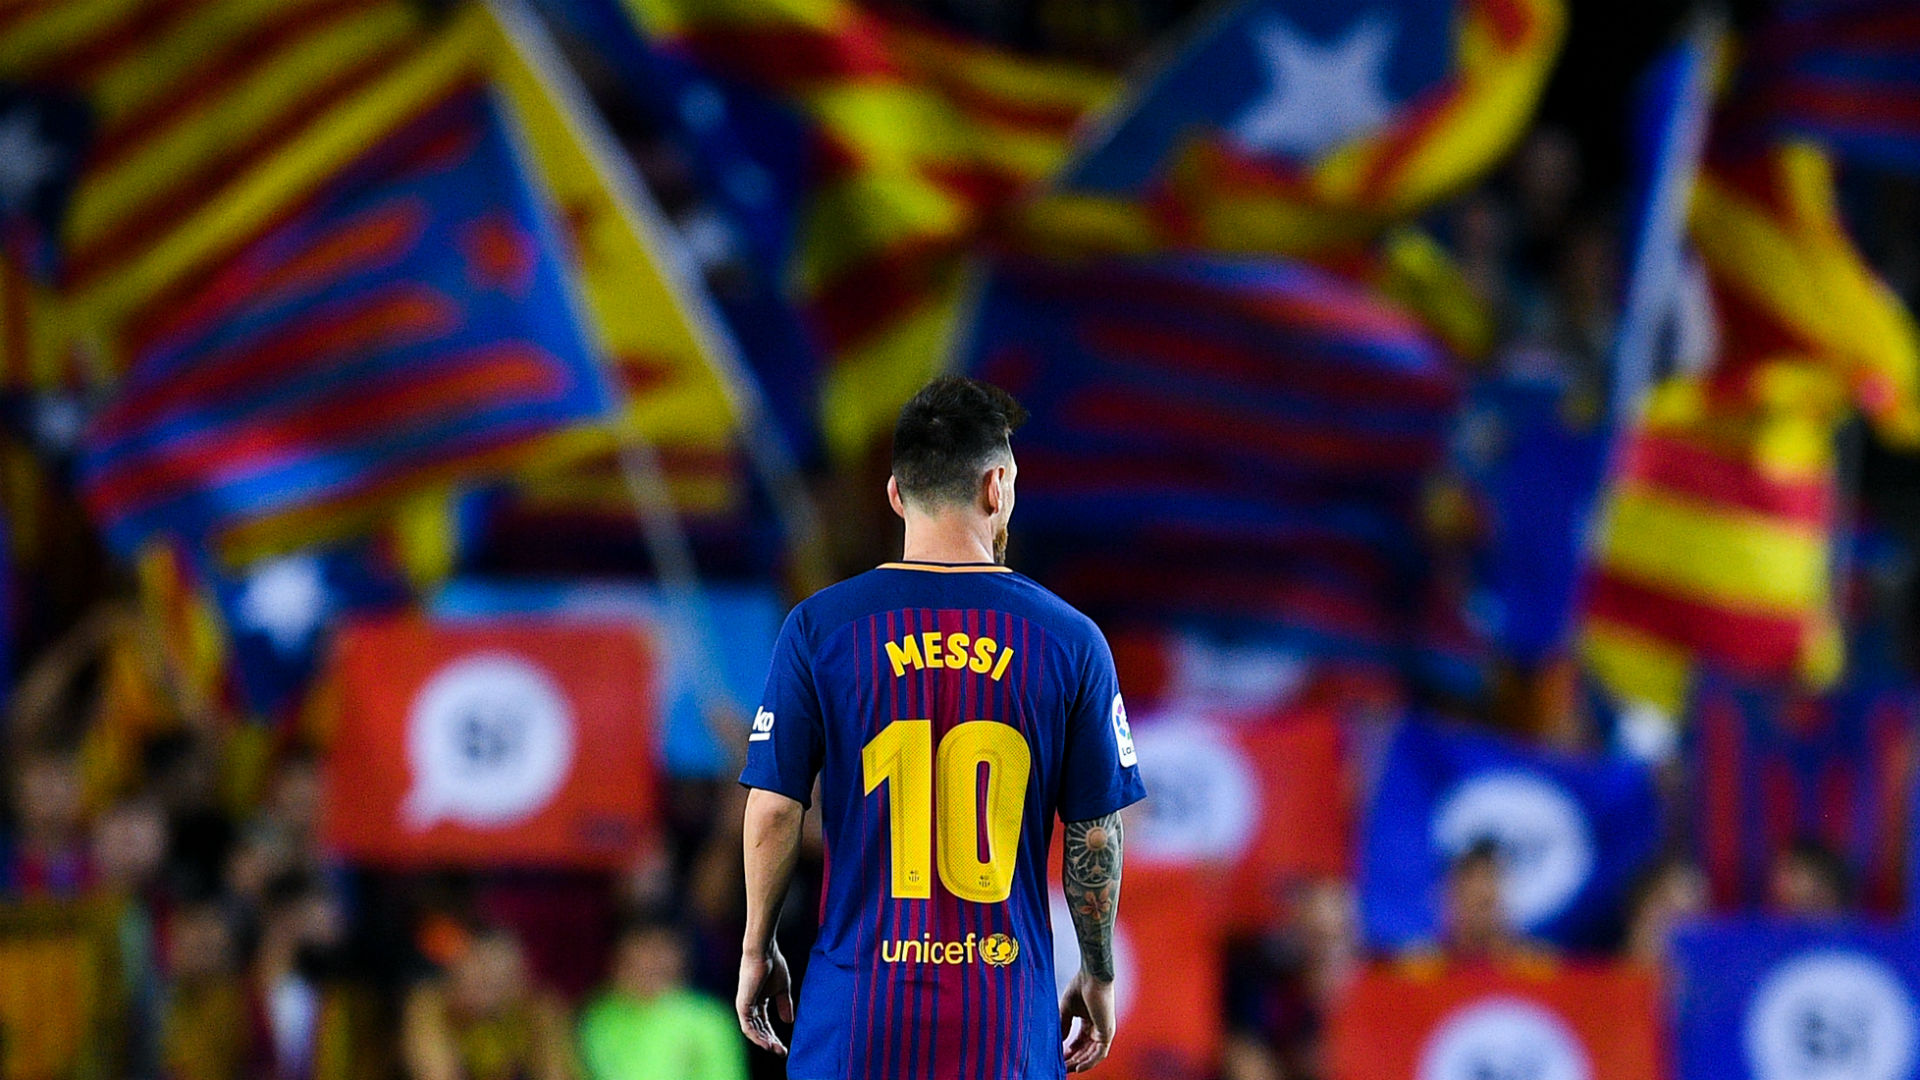 Lionel Messi Catalan flags